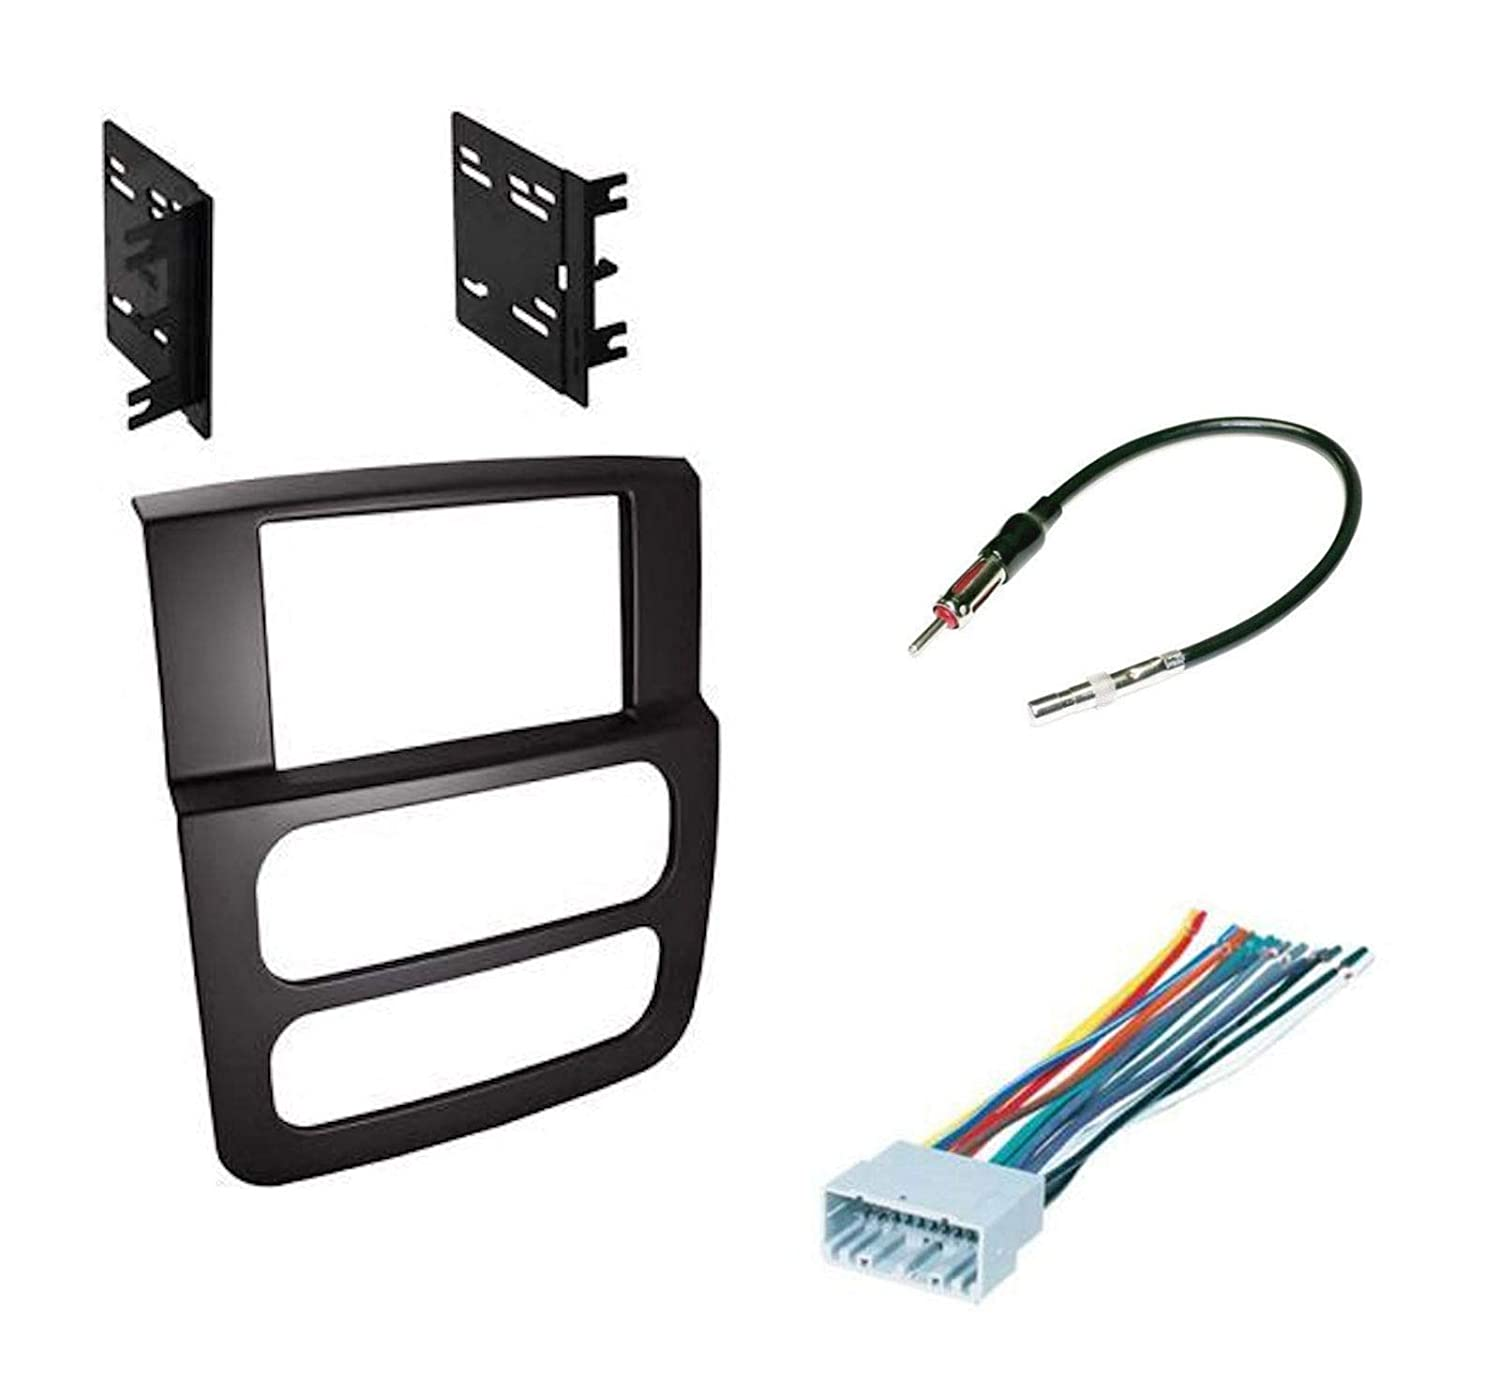 Double Din Dash Kit w/Harness and Antenna for 2002-2005 Dodge Ram Pickup 1500